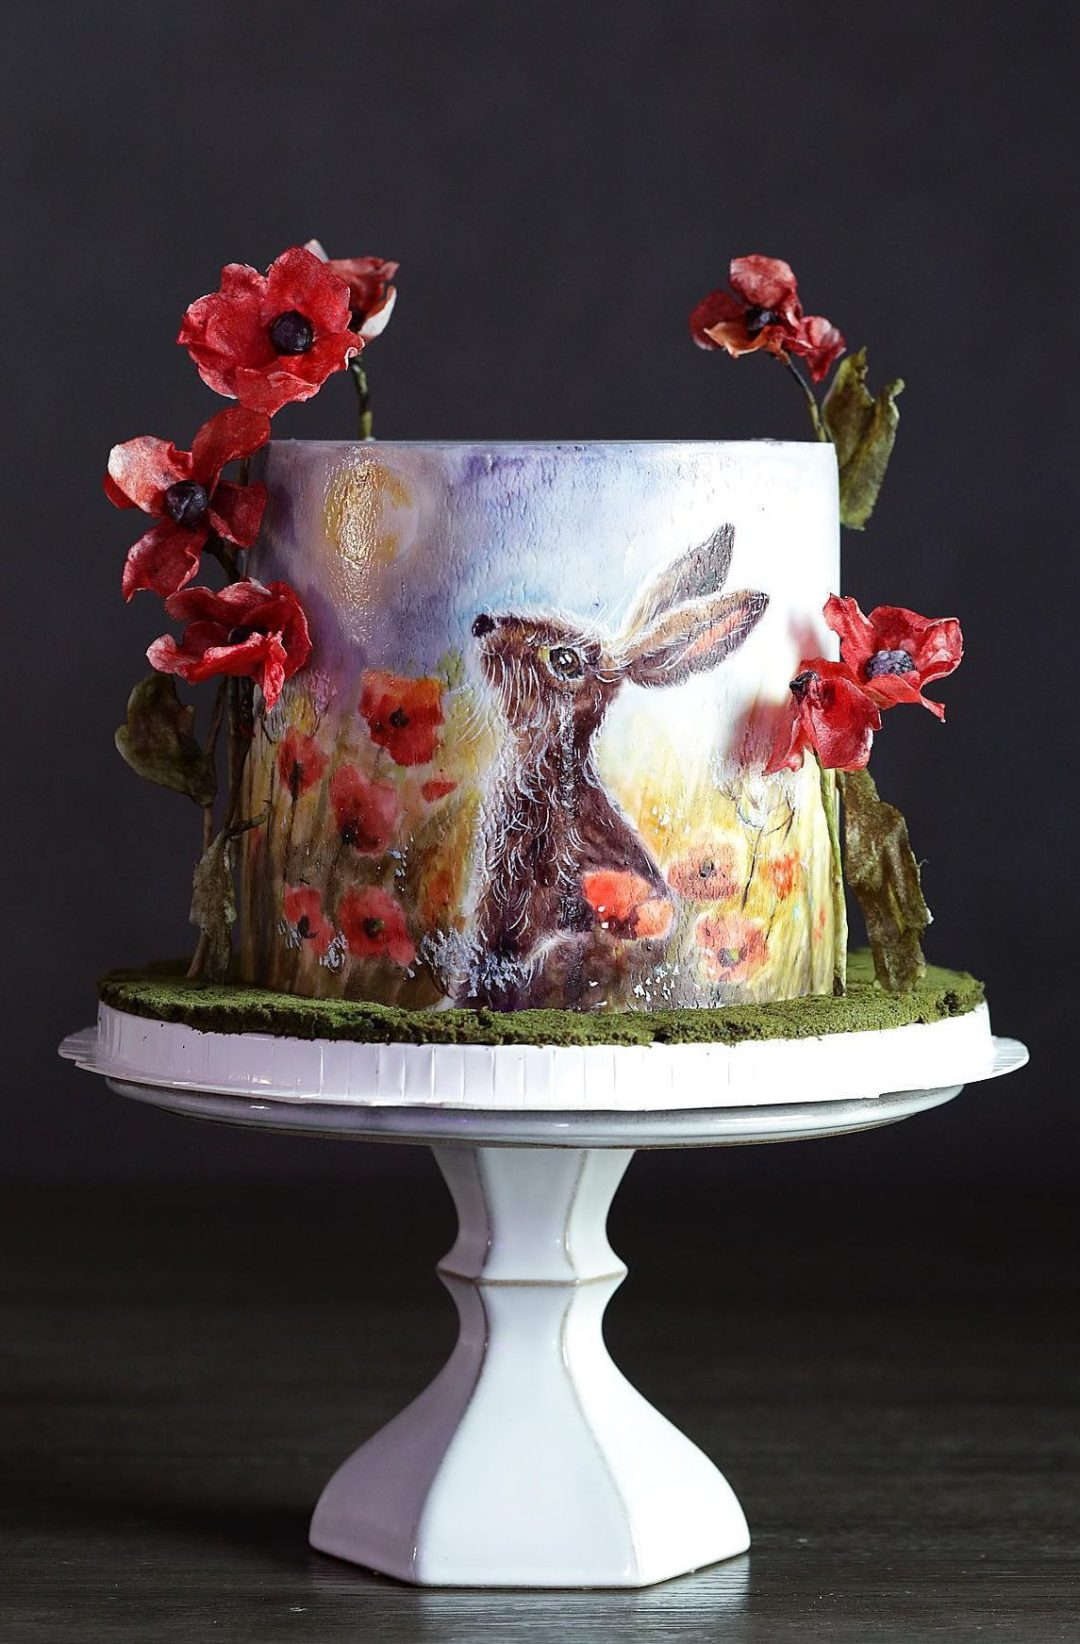 Artistic Easter Bunny Cake